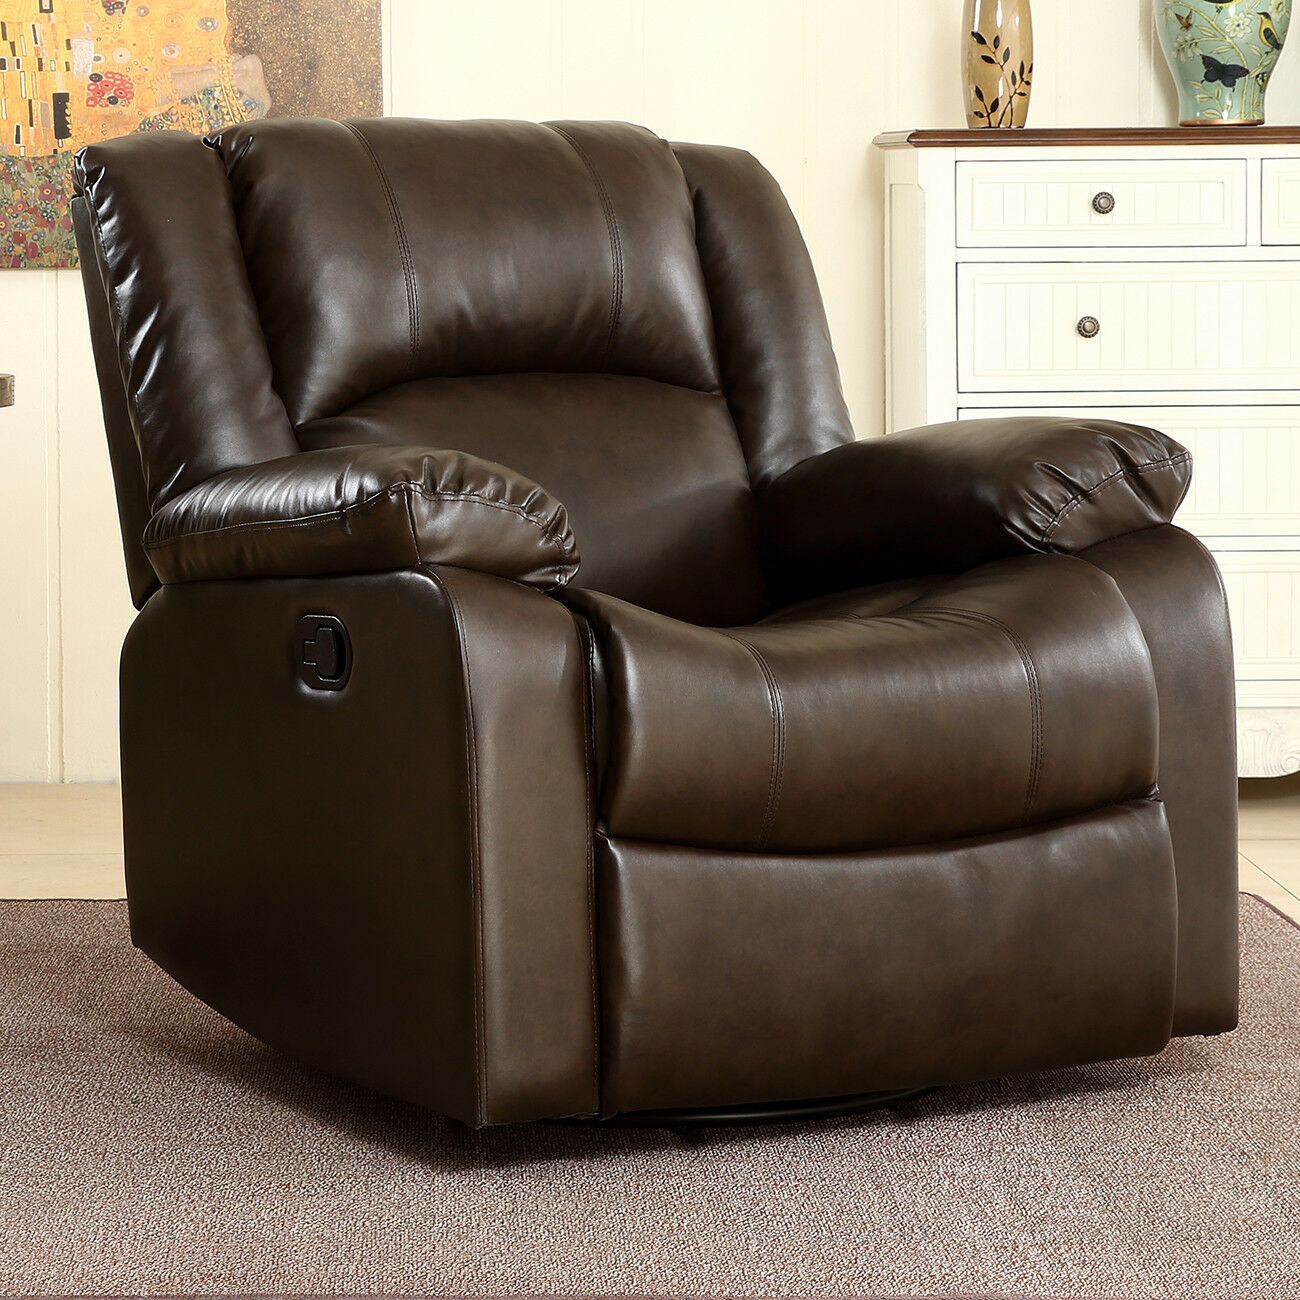 swivel recliner chairs for living room 2. Picture 1 of 7  Belleze Faux Leather Rocker and Swivel Glider Recliner Living Room